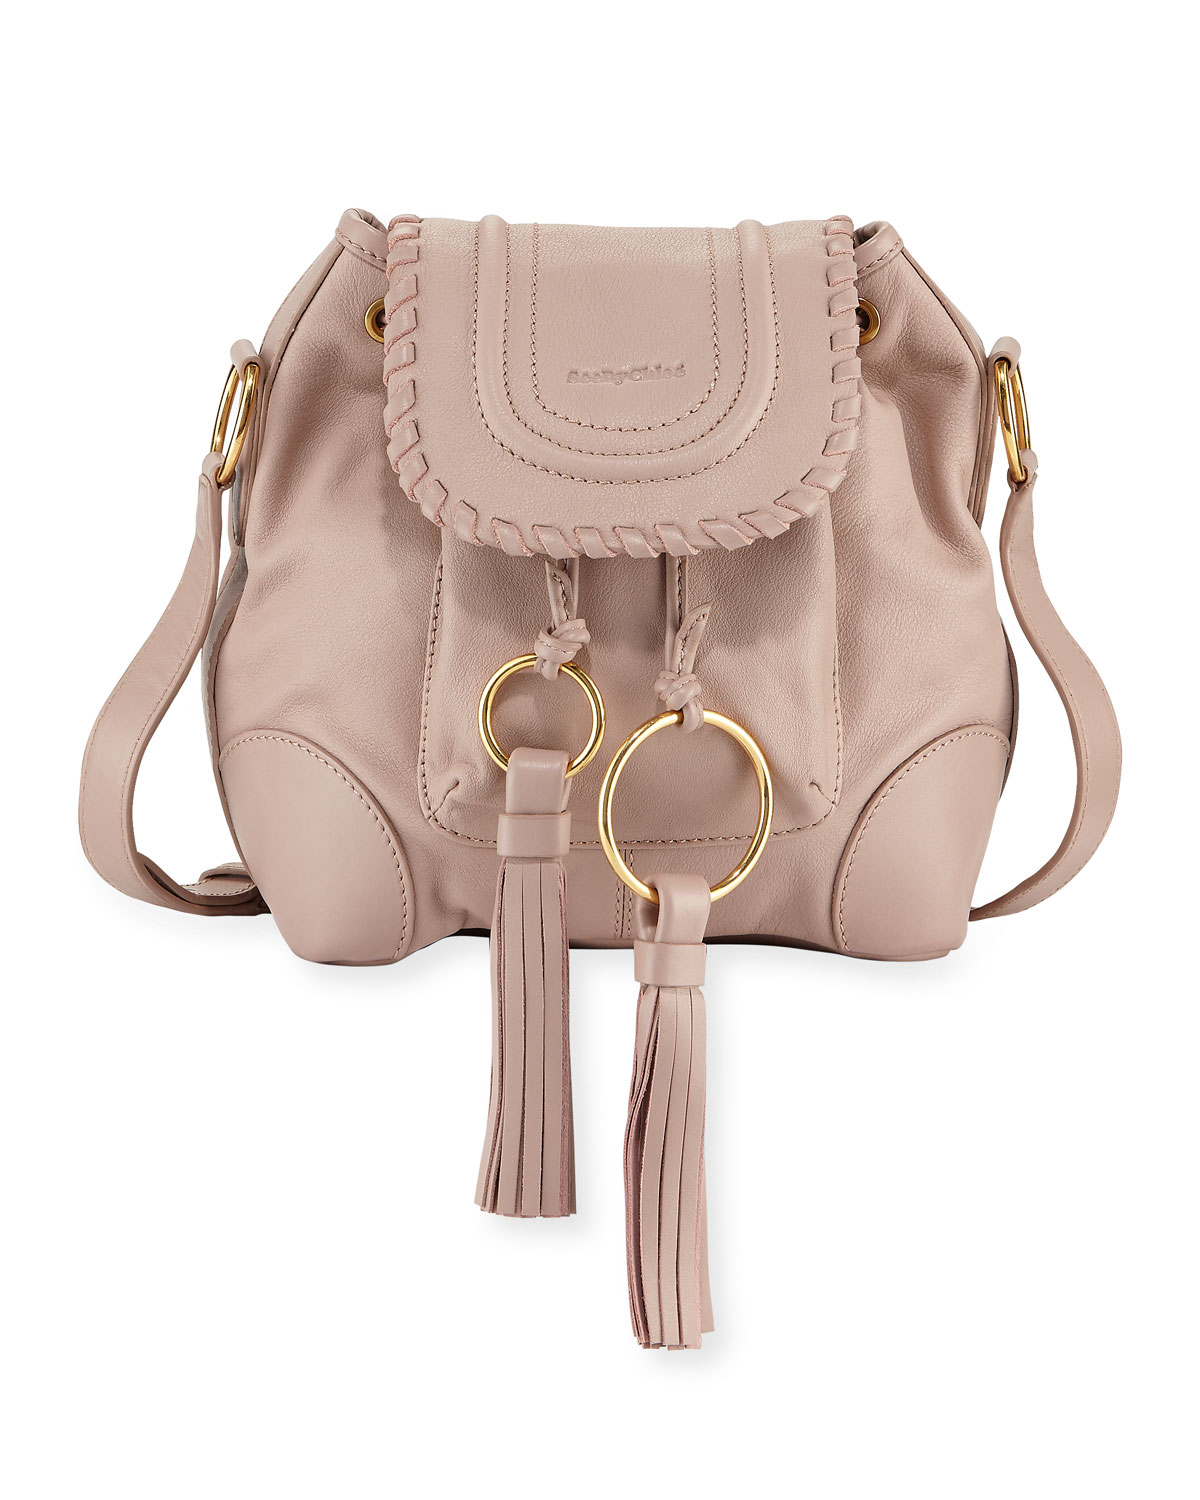 58f22535a0b14 See by Chloe Polly Leather Flap Bucket Bag | Neiman Marcus